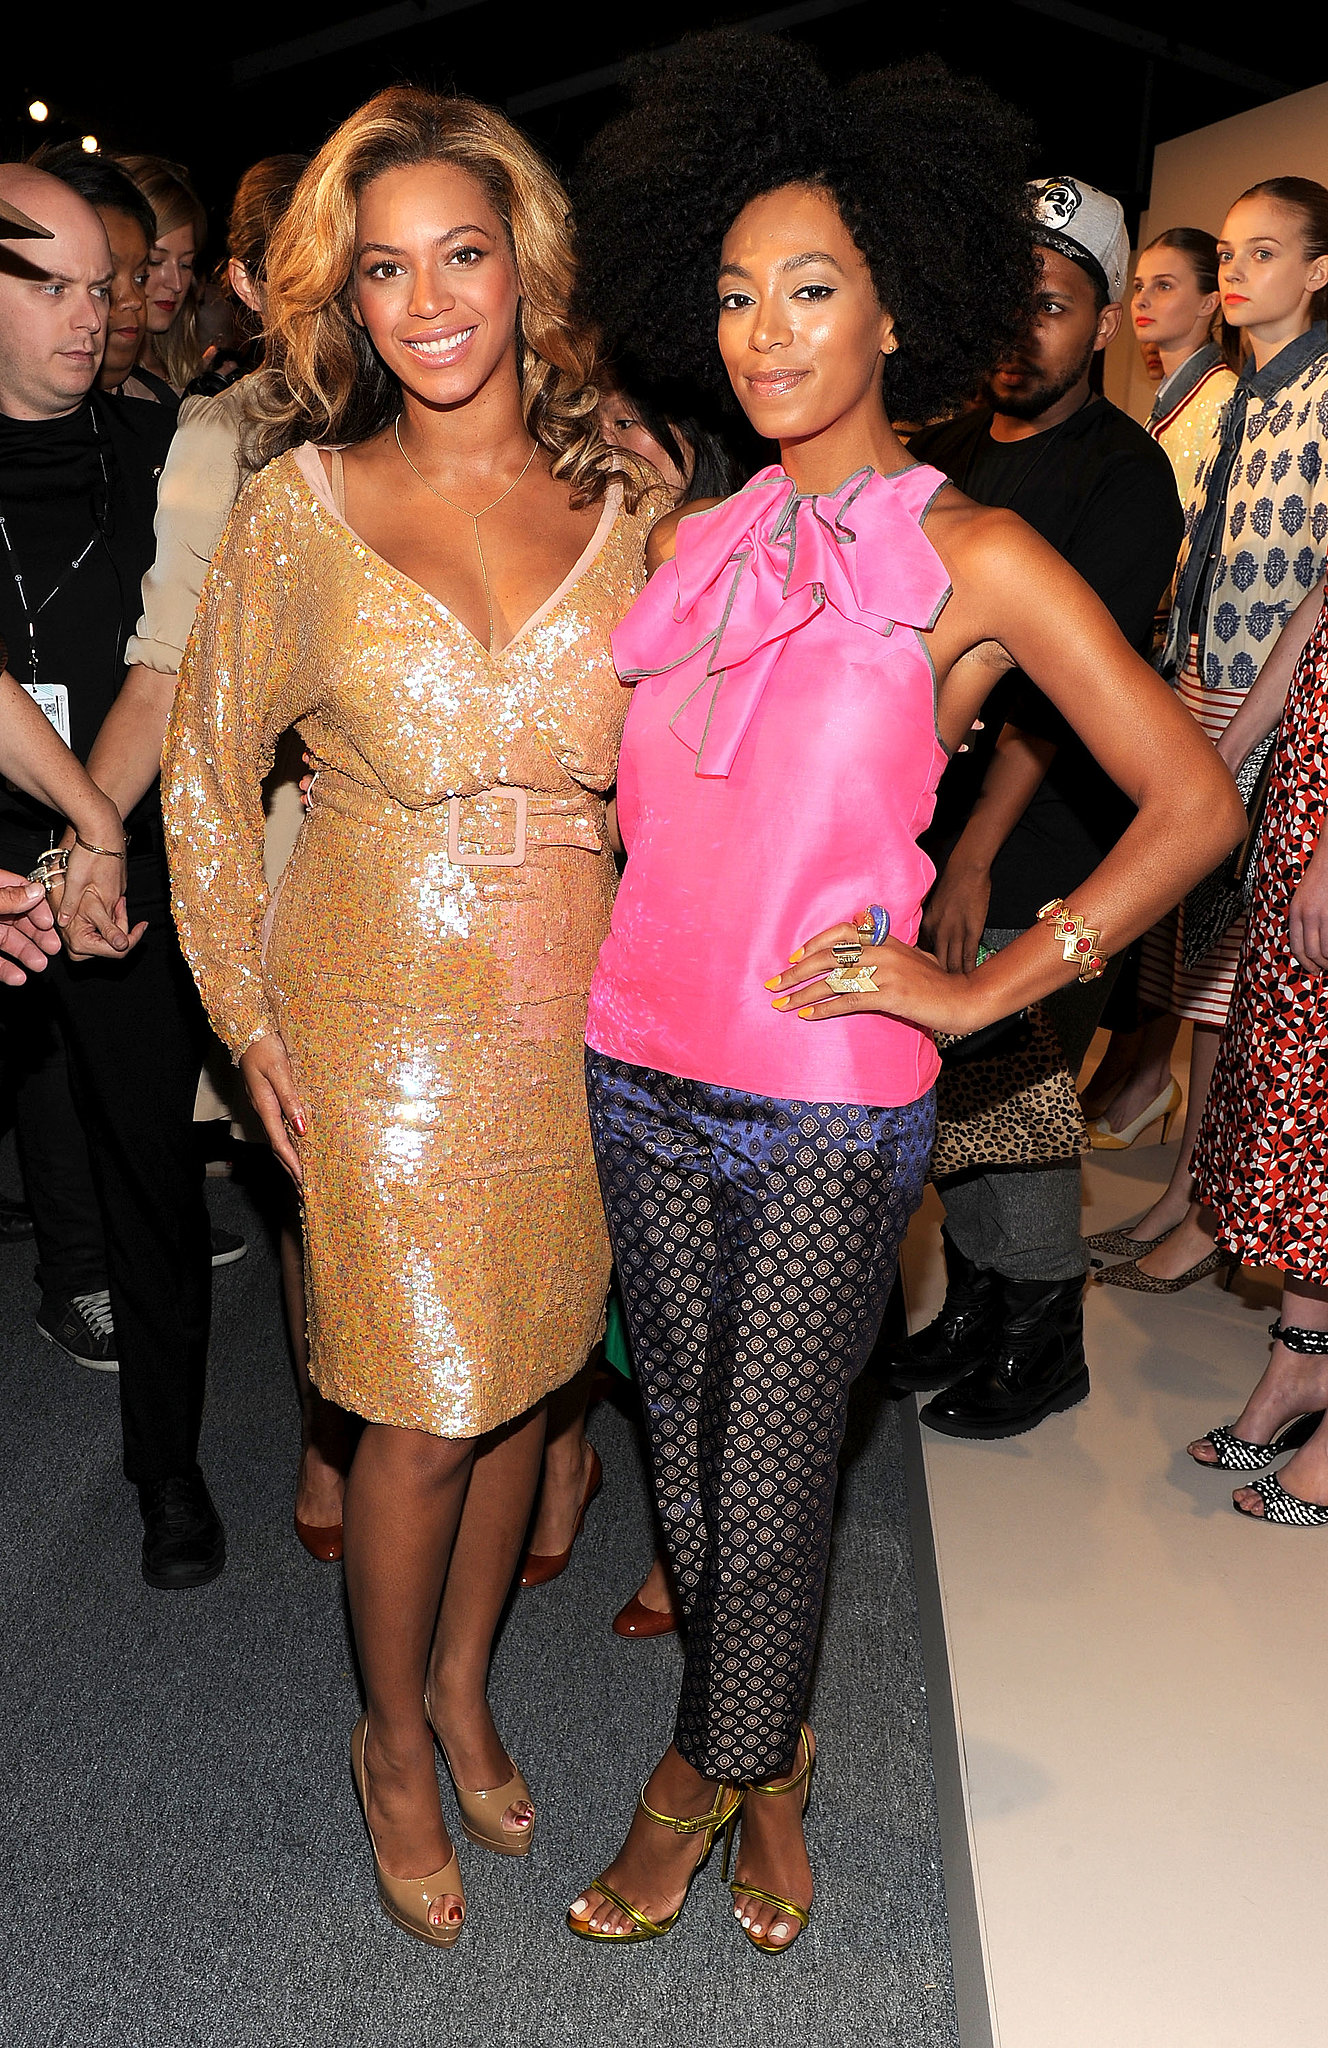 The Knowles sisters doubled up on style during NYFW Spring 2012. Solange was all smiles in a hot-pink ruffled blouse, cropped trousers, and lime-green sandals, while Beyoncé glittered in a long-sleeved, sequined number.